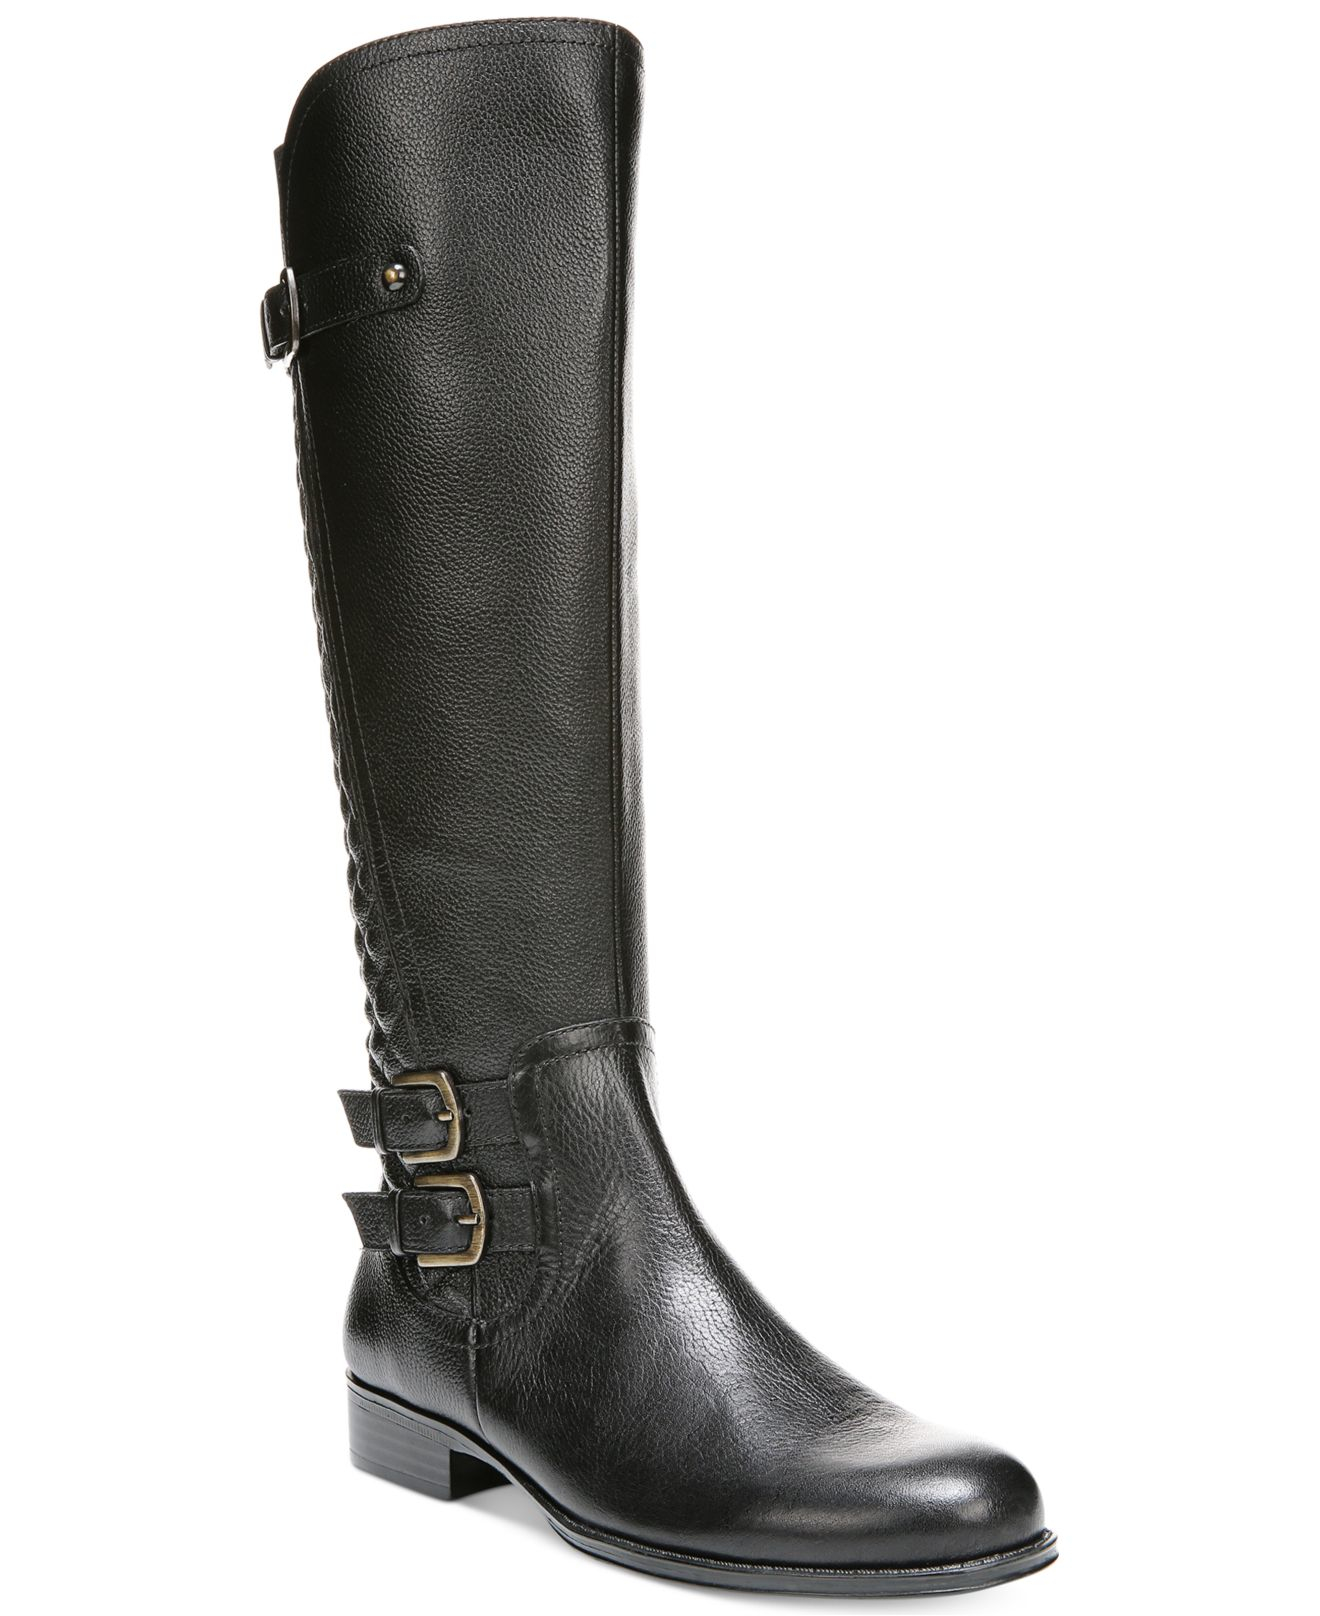 Naturalizer Boots. Want to make a statement with Naturalizer boots? Discover boots in a variety of styles and colors that will instantly refresh any outfit. From shooties to knee-high styles, you are sure to find a pair that suit both your feet and your style, whatever occasion you are wearing them too.